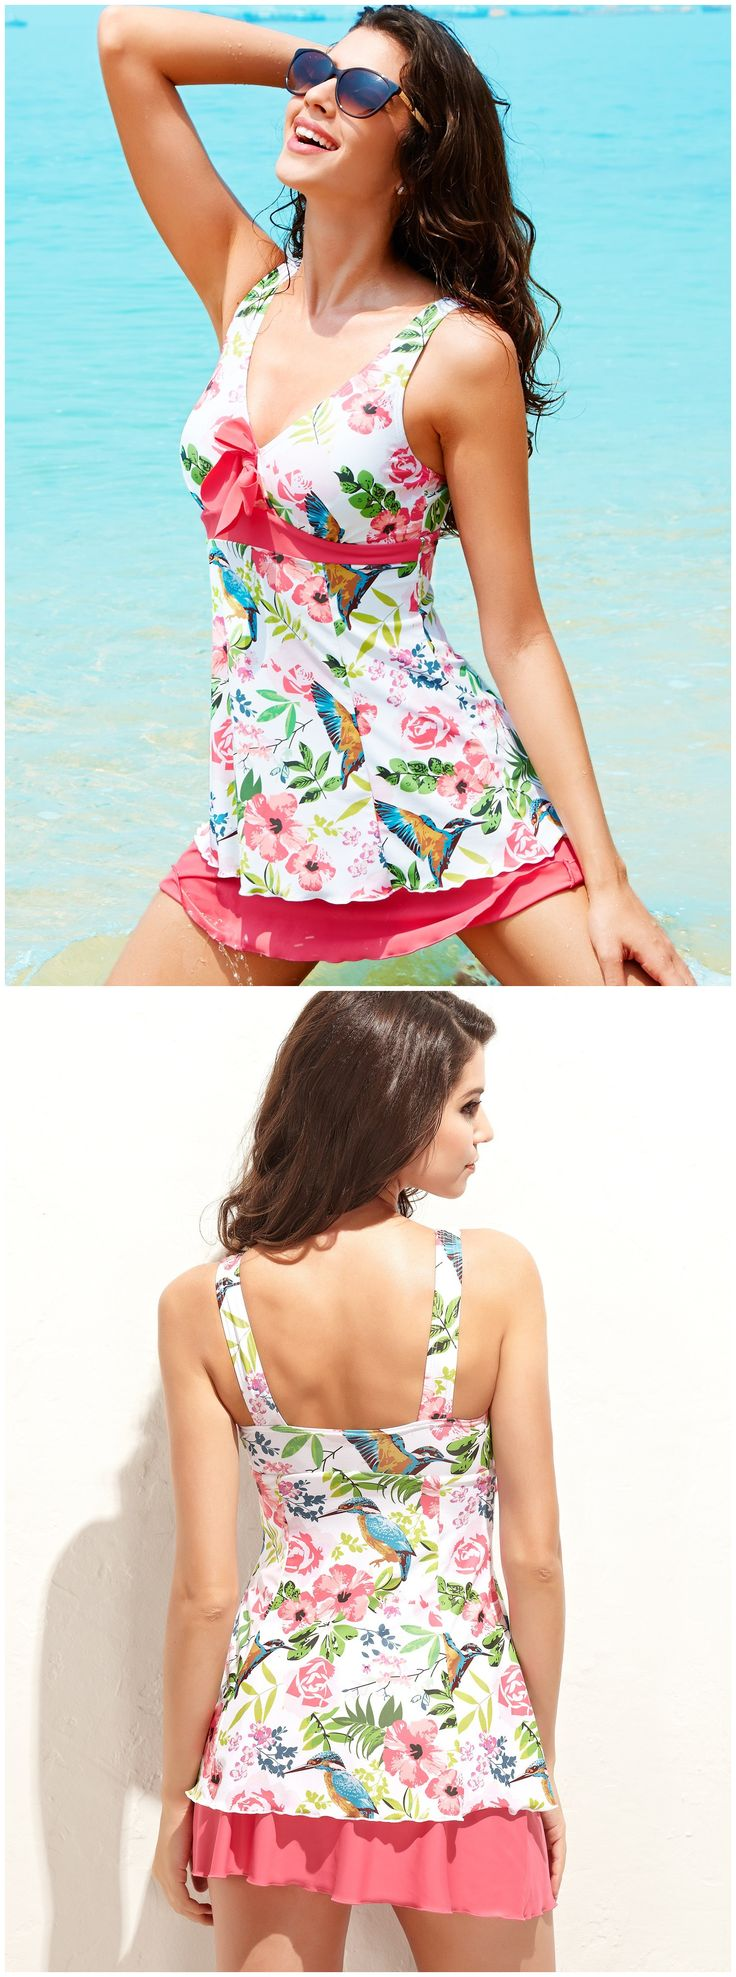 This beautiful conjoined swim skirt is perfect to wear by the pool, on the beach or to catch some sunshine. Show off your cleavage with this push up halter top swimsuits, enjoy your summer holidays from now on. It's also an excellent and special gift for your loved ones. http://www.amazon.co.uk/gp/product/B00K8RGDCY